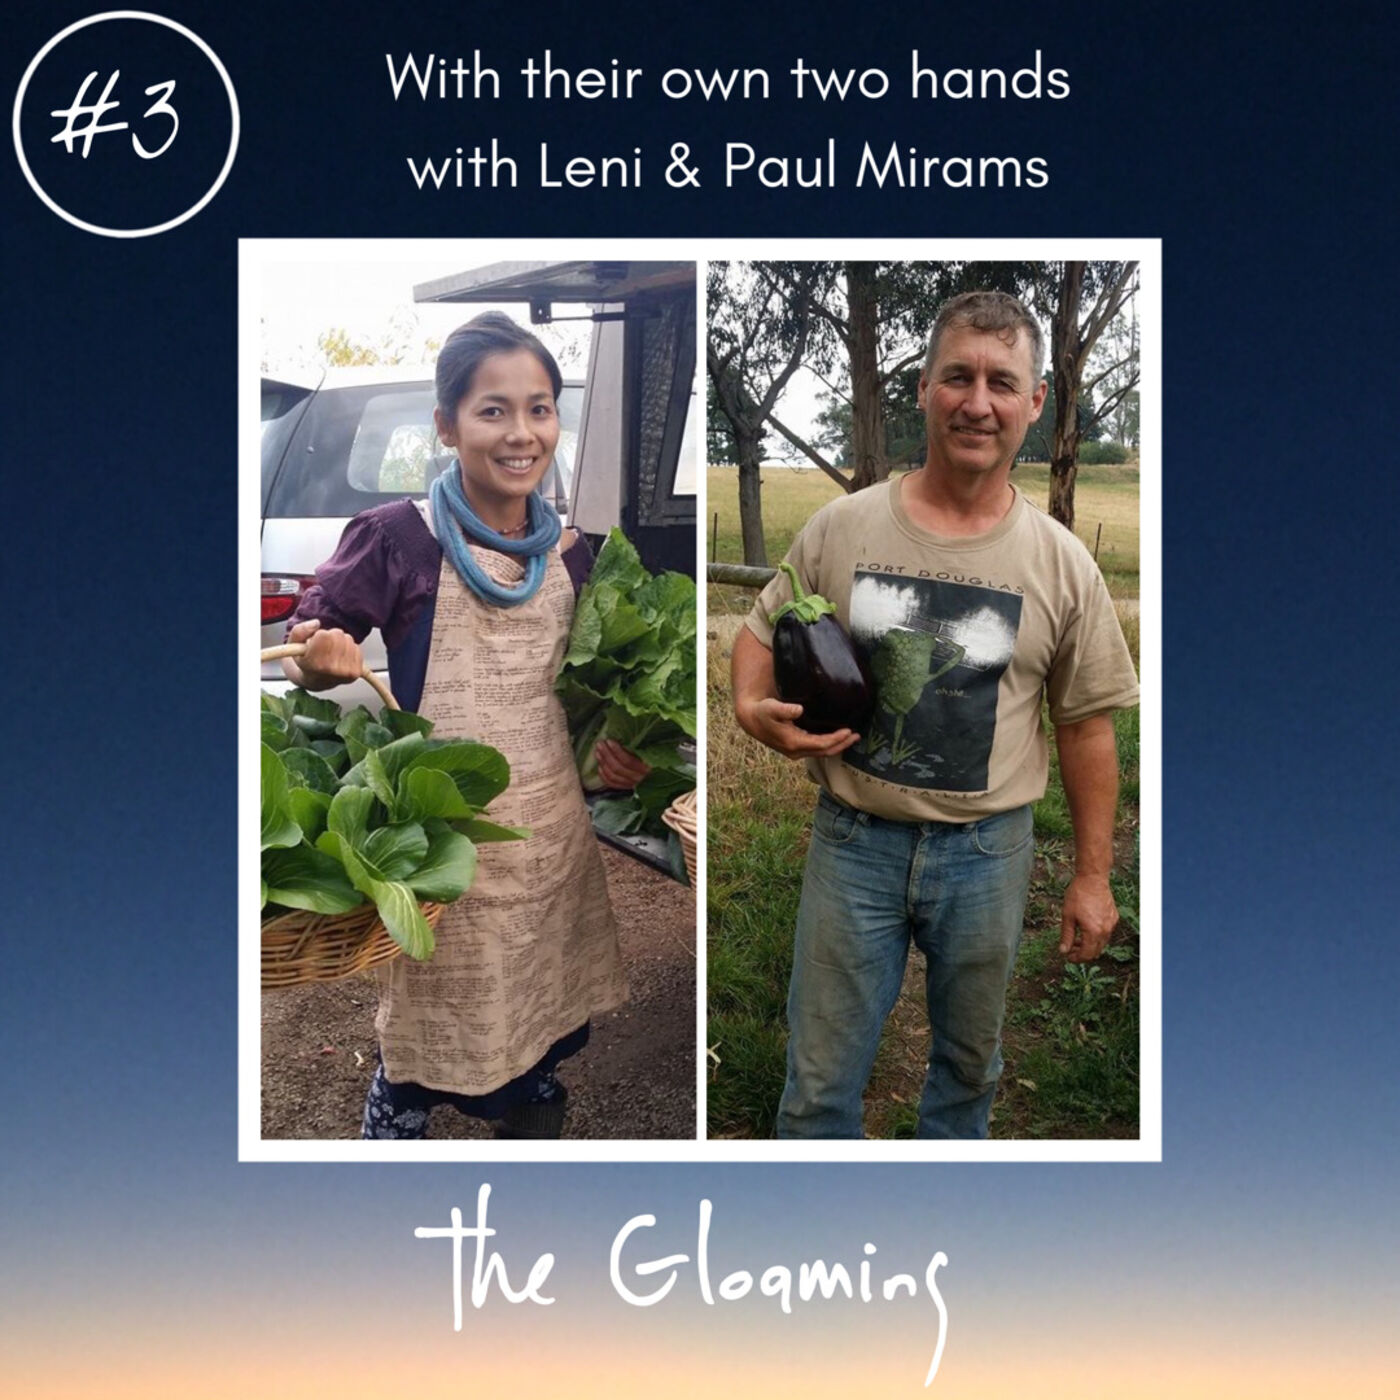 TG3: With their own two hands (with Leni & Paul Mirams)